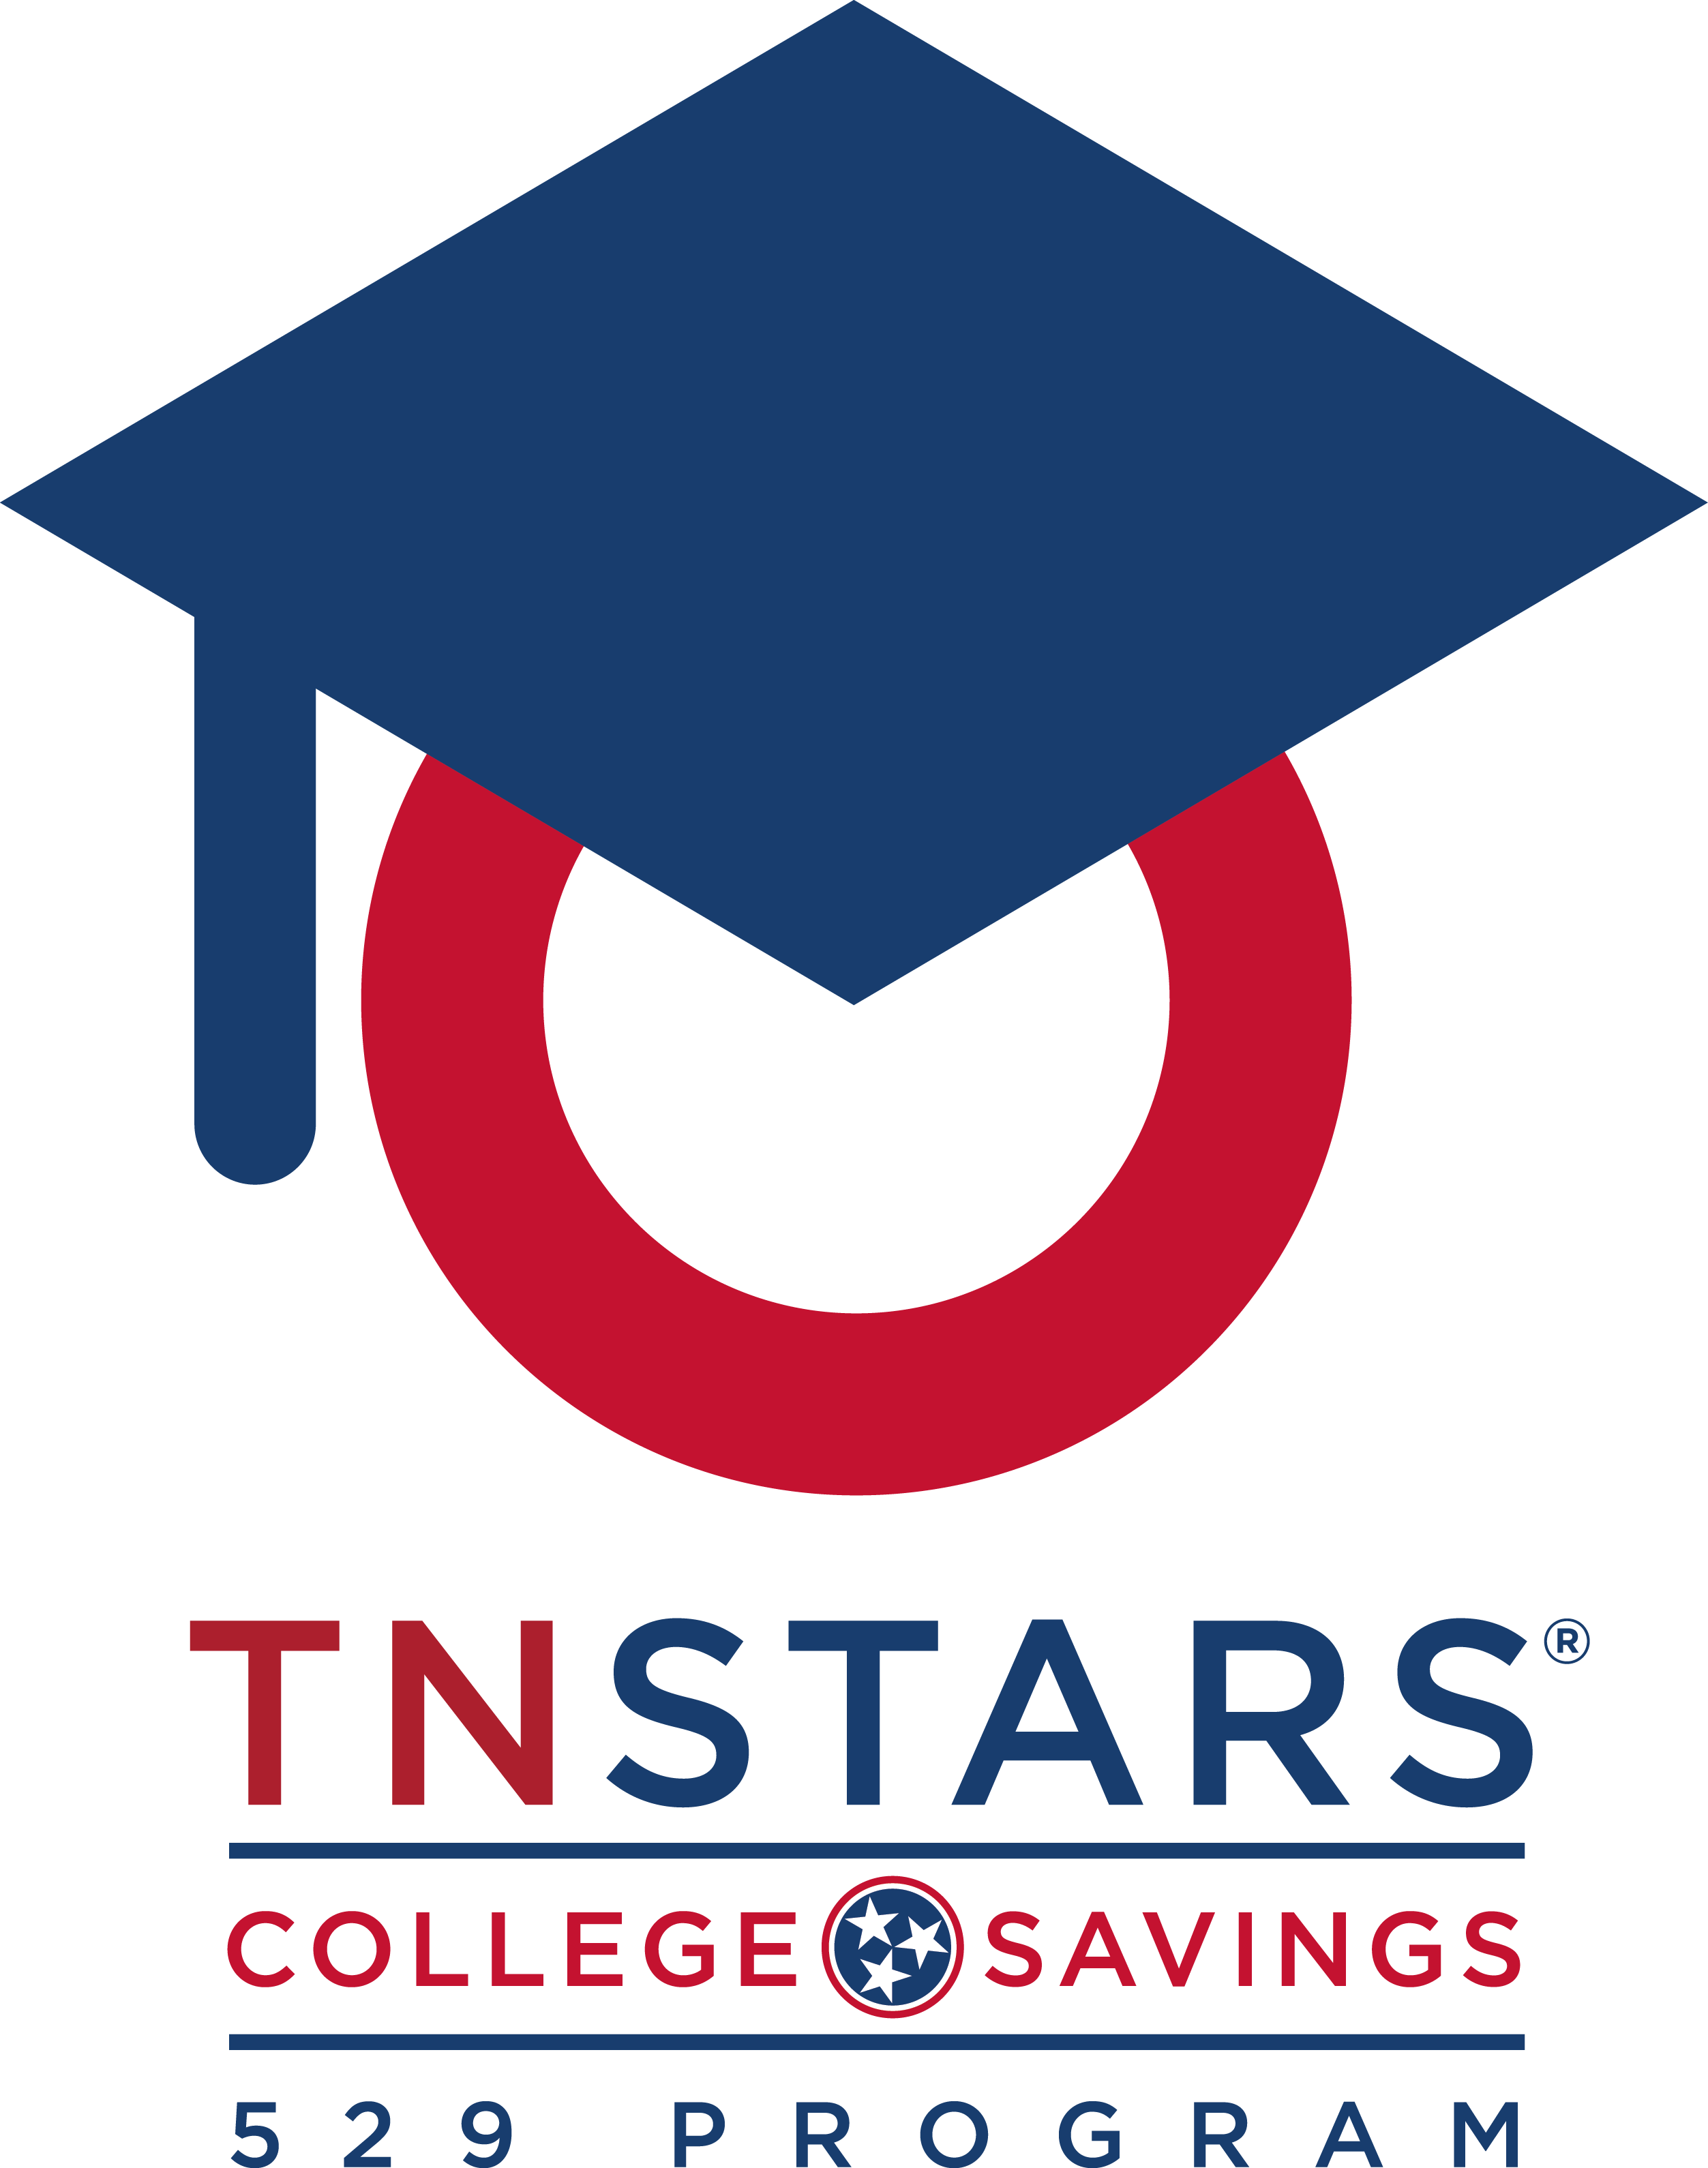 TNStars College Savings 529 Program logo